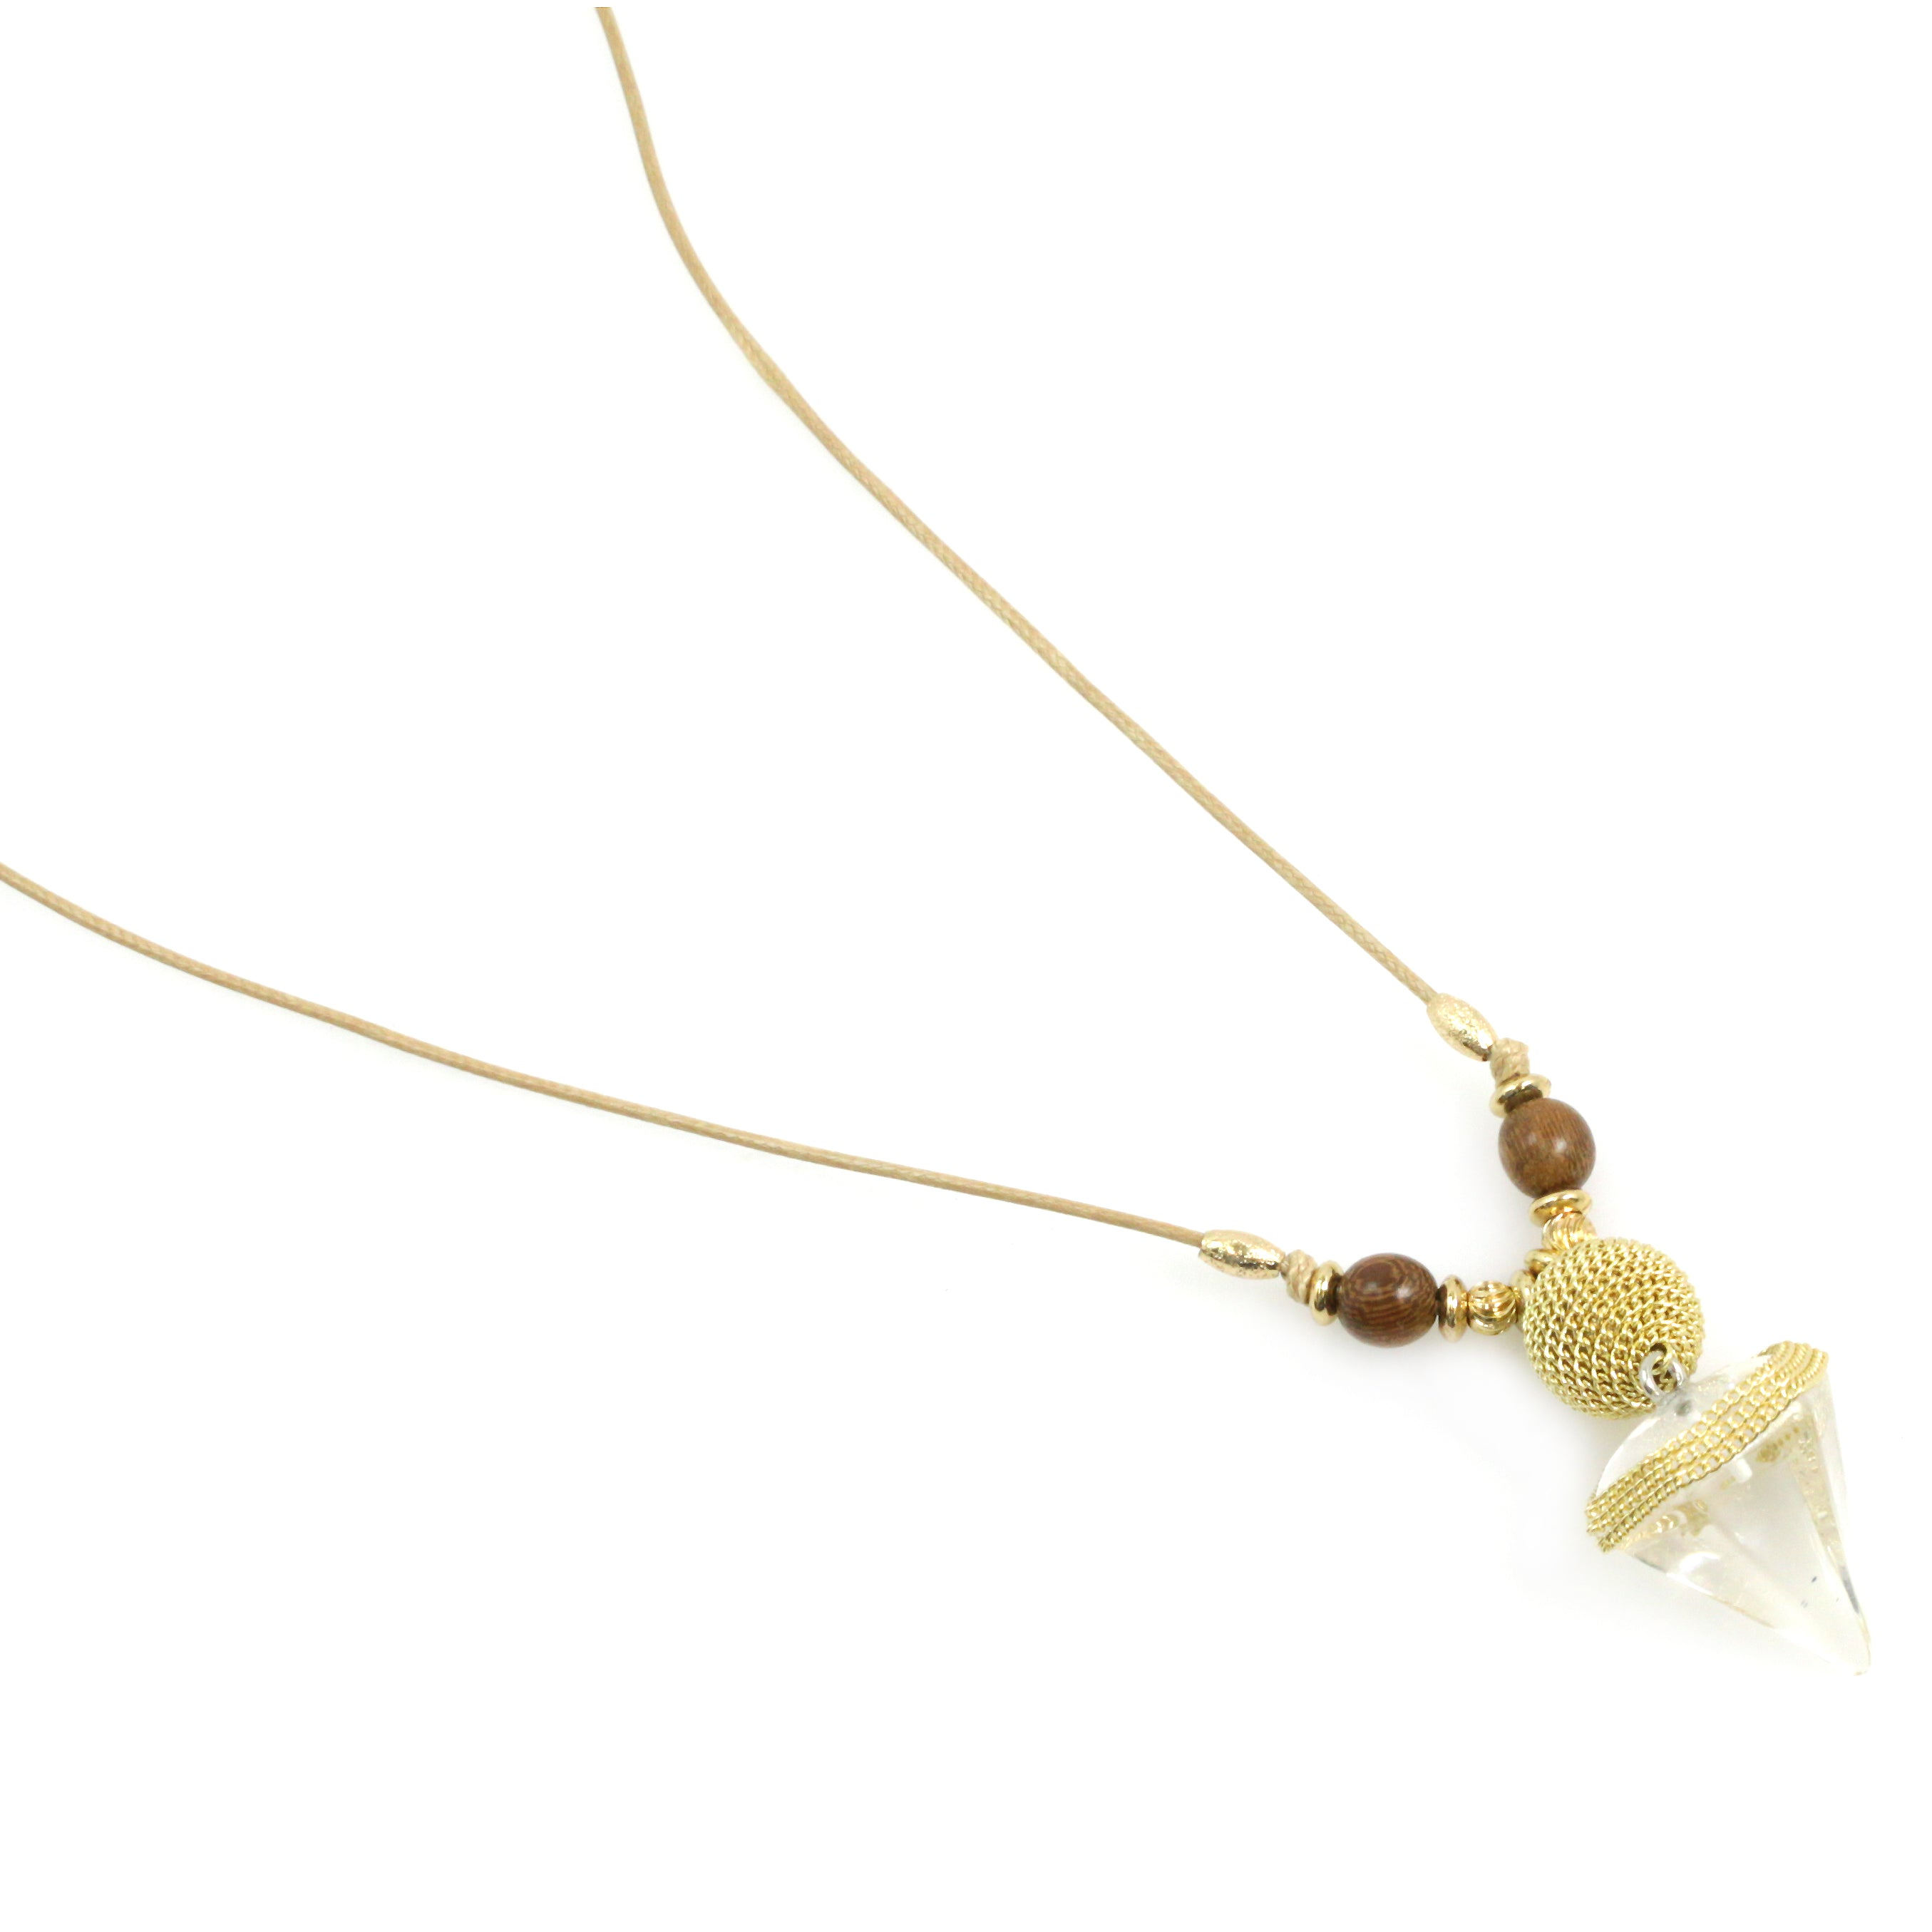 Semi Precious Natural Gemstone Pendant Long Necklace